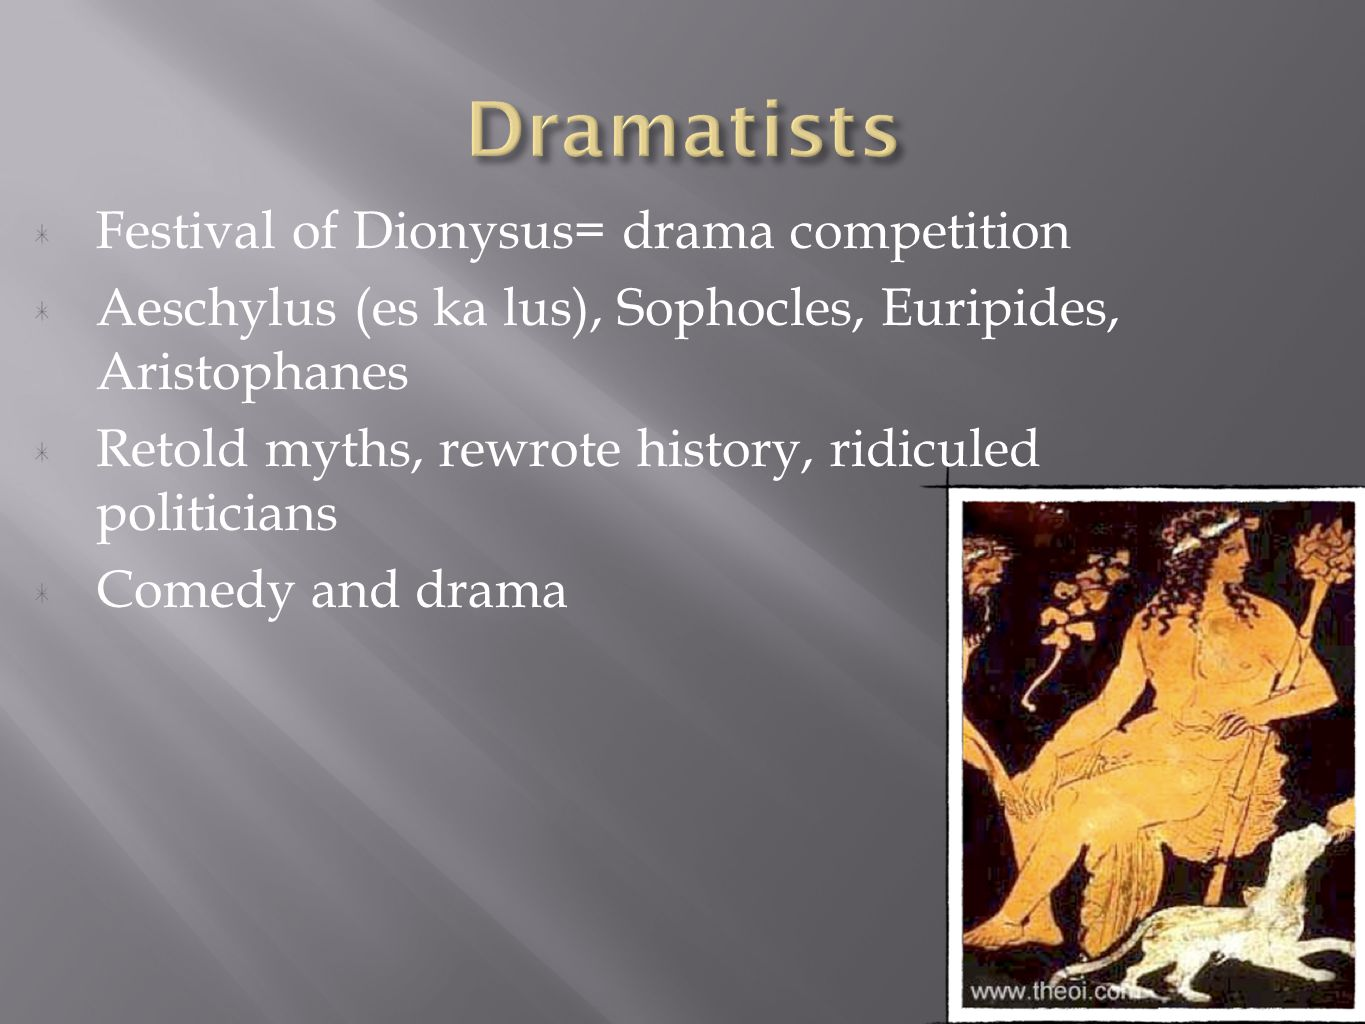 Festival of Dionysus= drama competition Aeschylus (es ka lus), Sophocles, Euripides, Aristophanes Retold myths, rewrote history, ridiculed politicians Comedy and drama